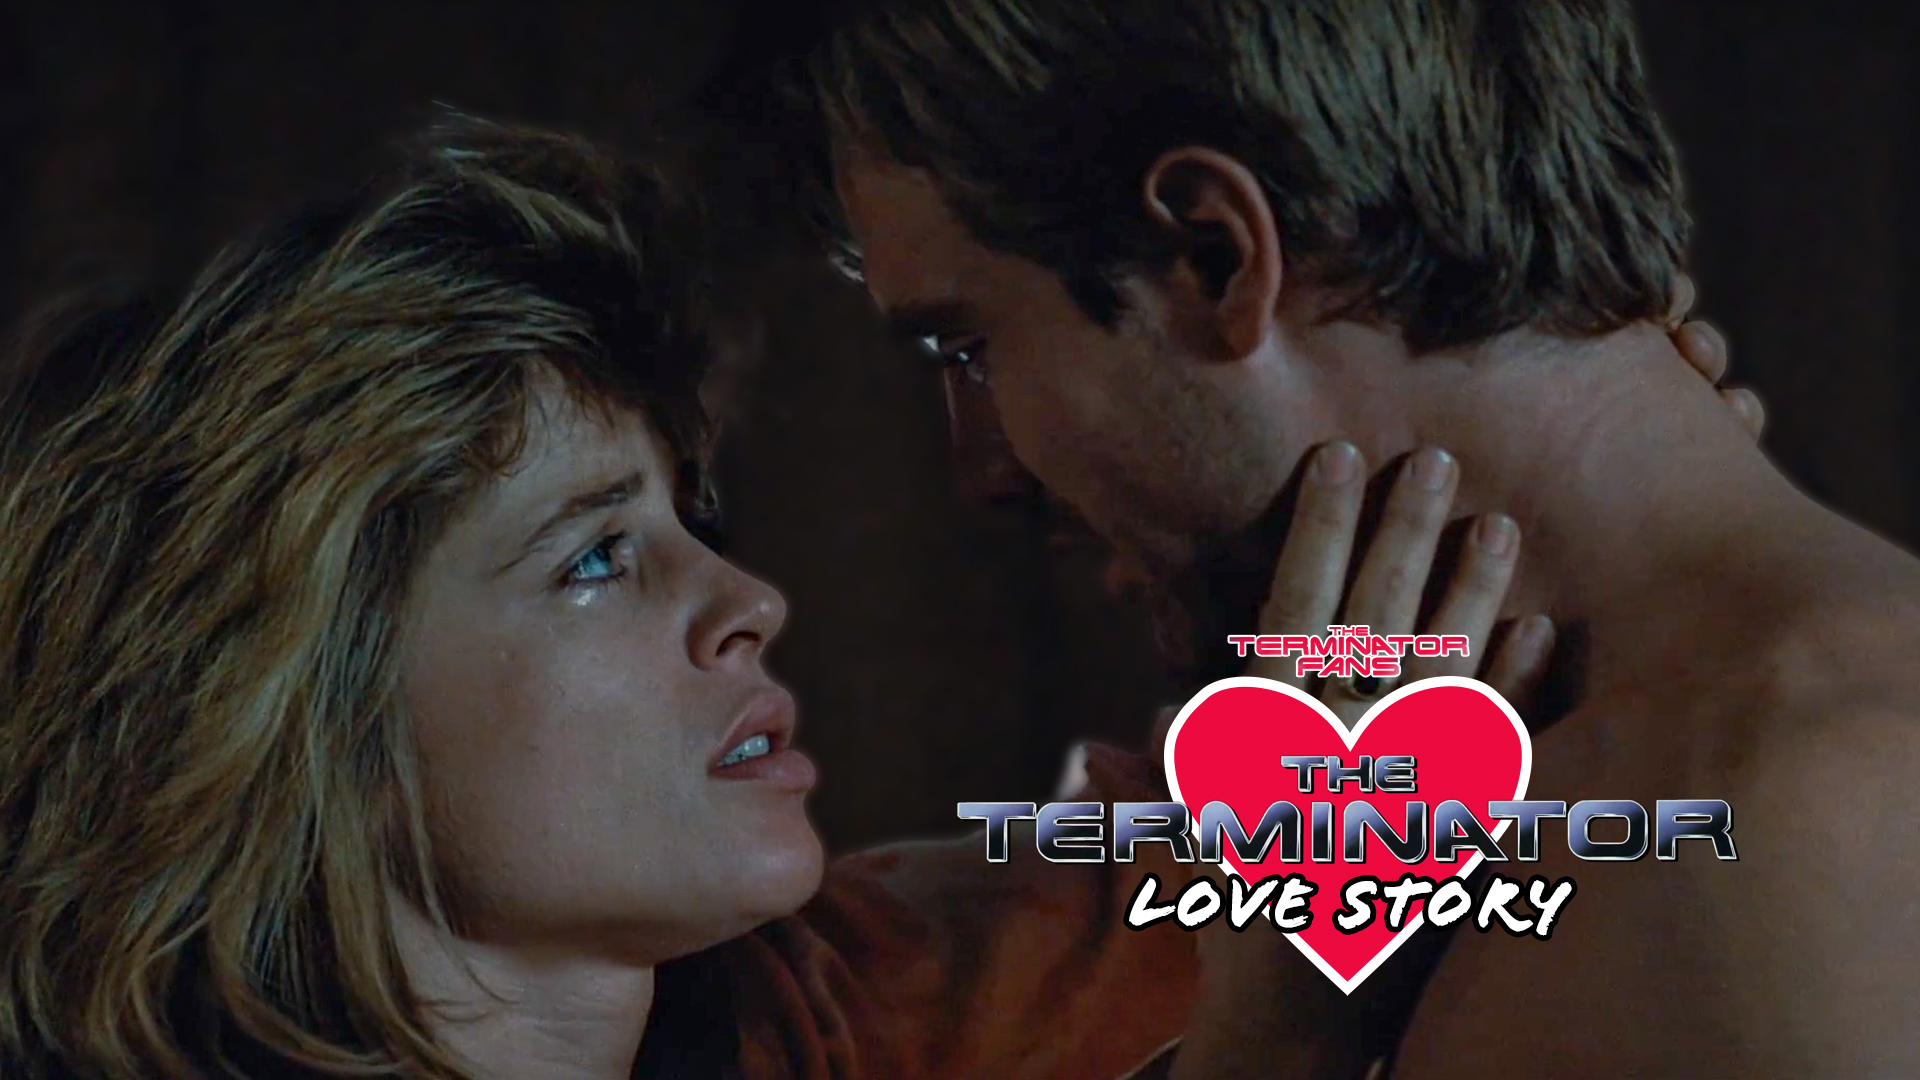 The Enduring Love Story of The Terminator Franchise